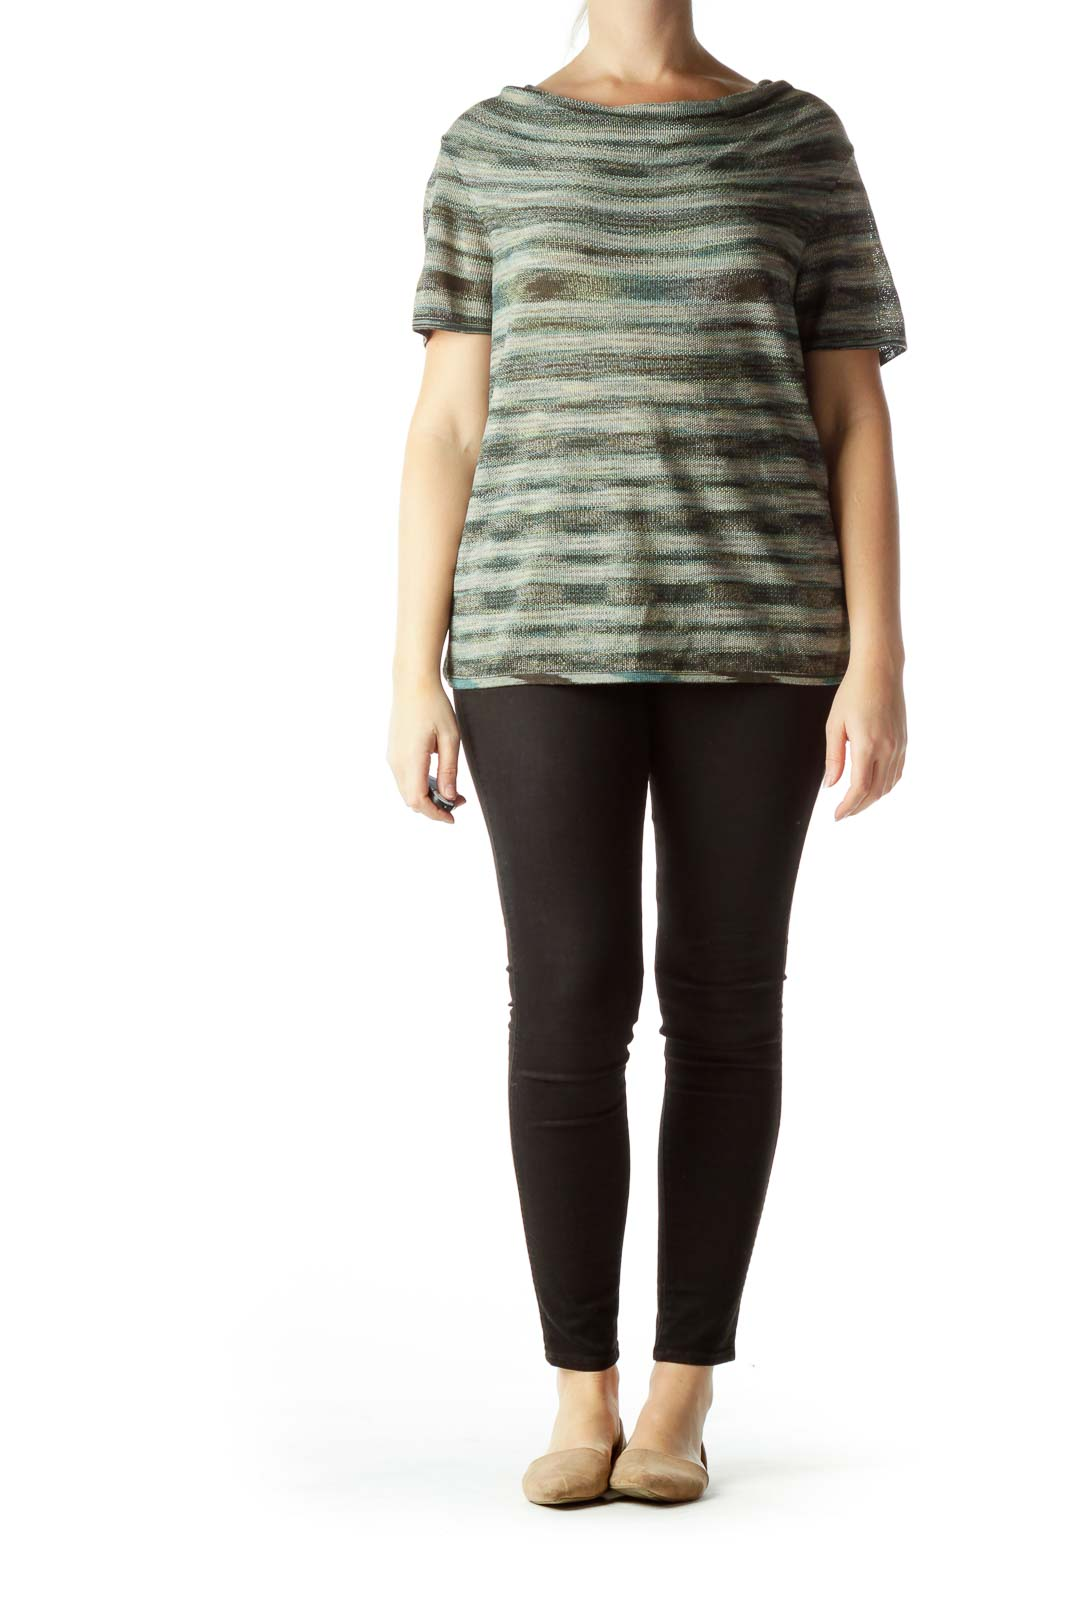 Green Print Cowl Neck Short Sleeve Knit Top